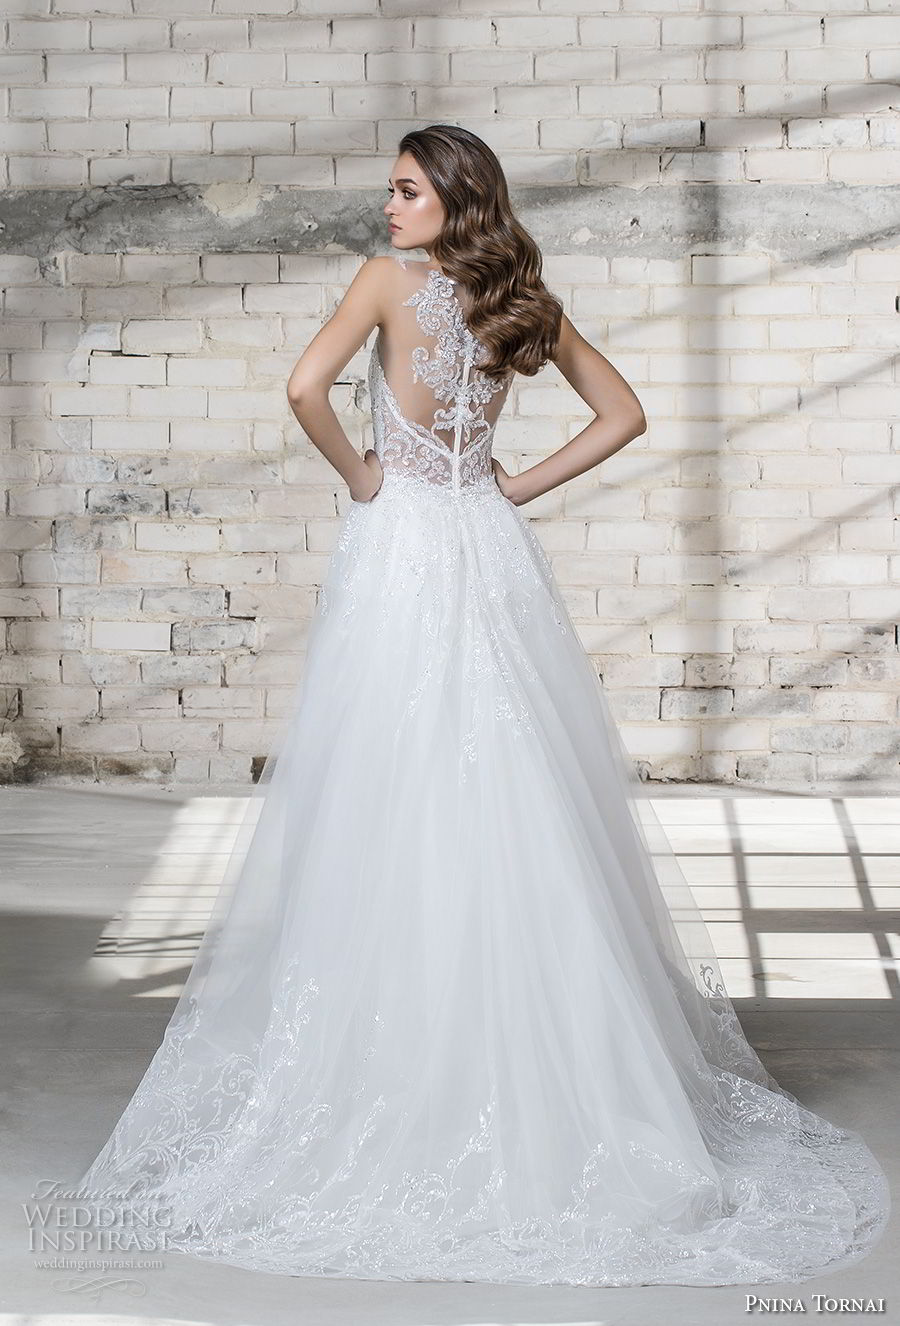 pnina tornai 2019 love bridal embellished strap deep plunging sweetheart neckline full embellishment elegant fit and flare wedding dress a line overskirt chapel train (17) bv